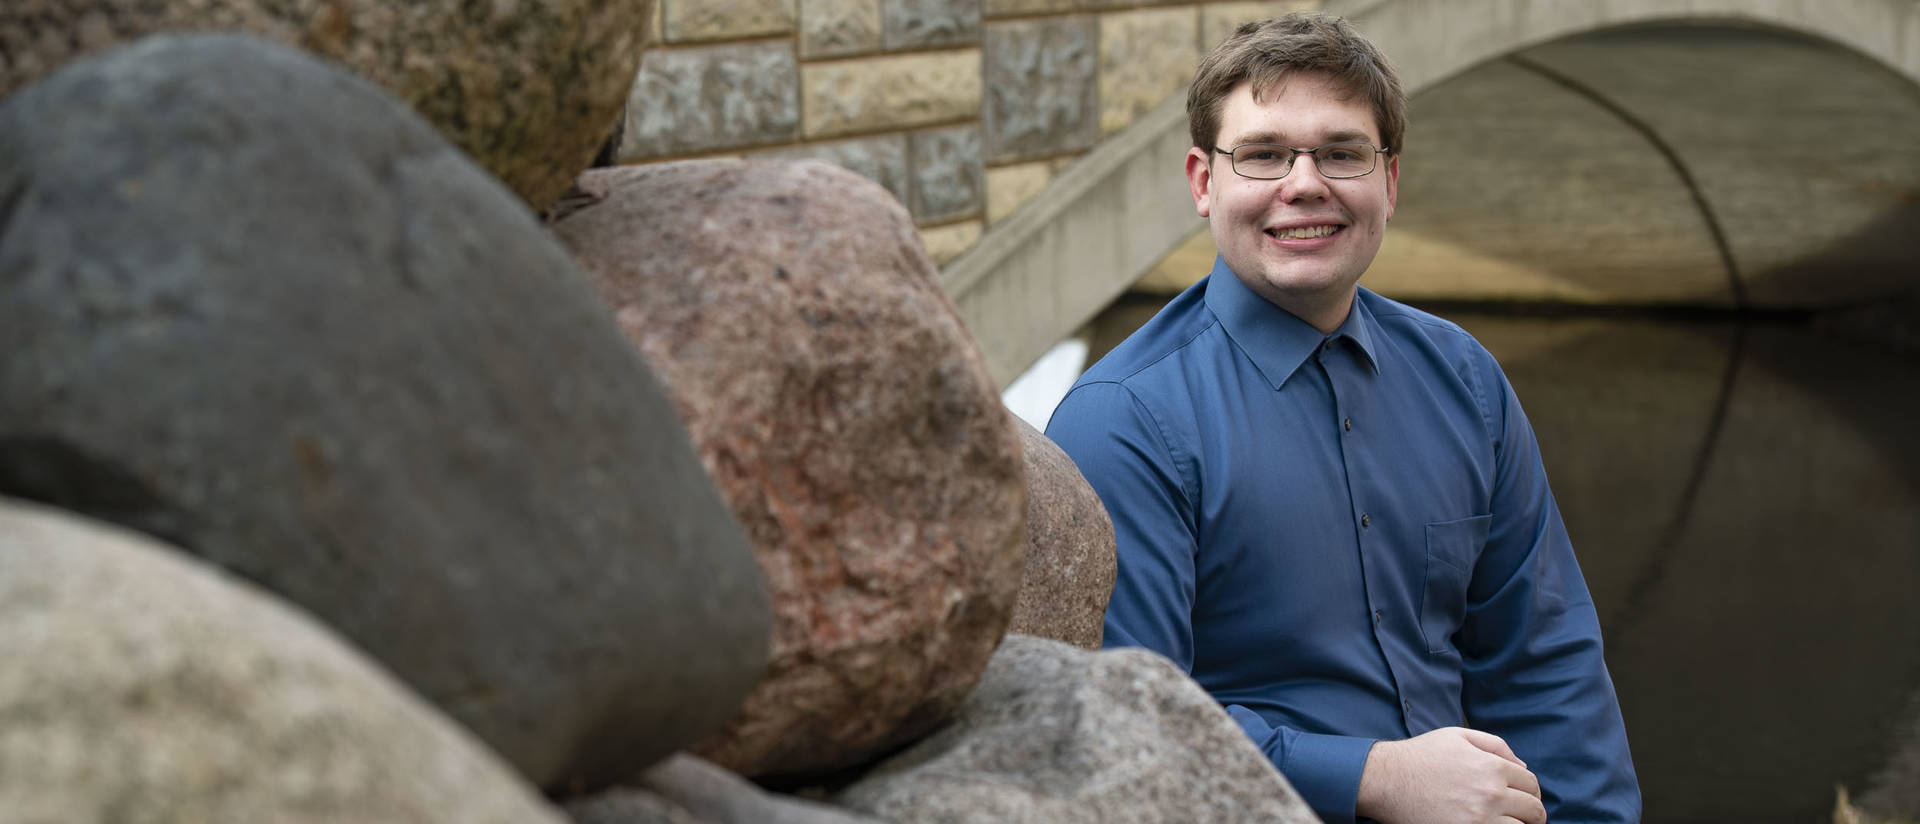 Jacob Erickson has known since elementary school that he wanted to study geology in college. As he prepares to graduate, he says his geology professors at UW-Eau Claire gave him a college experience that exceeded his already high expectations.